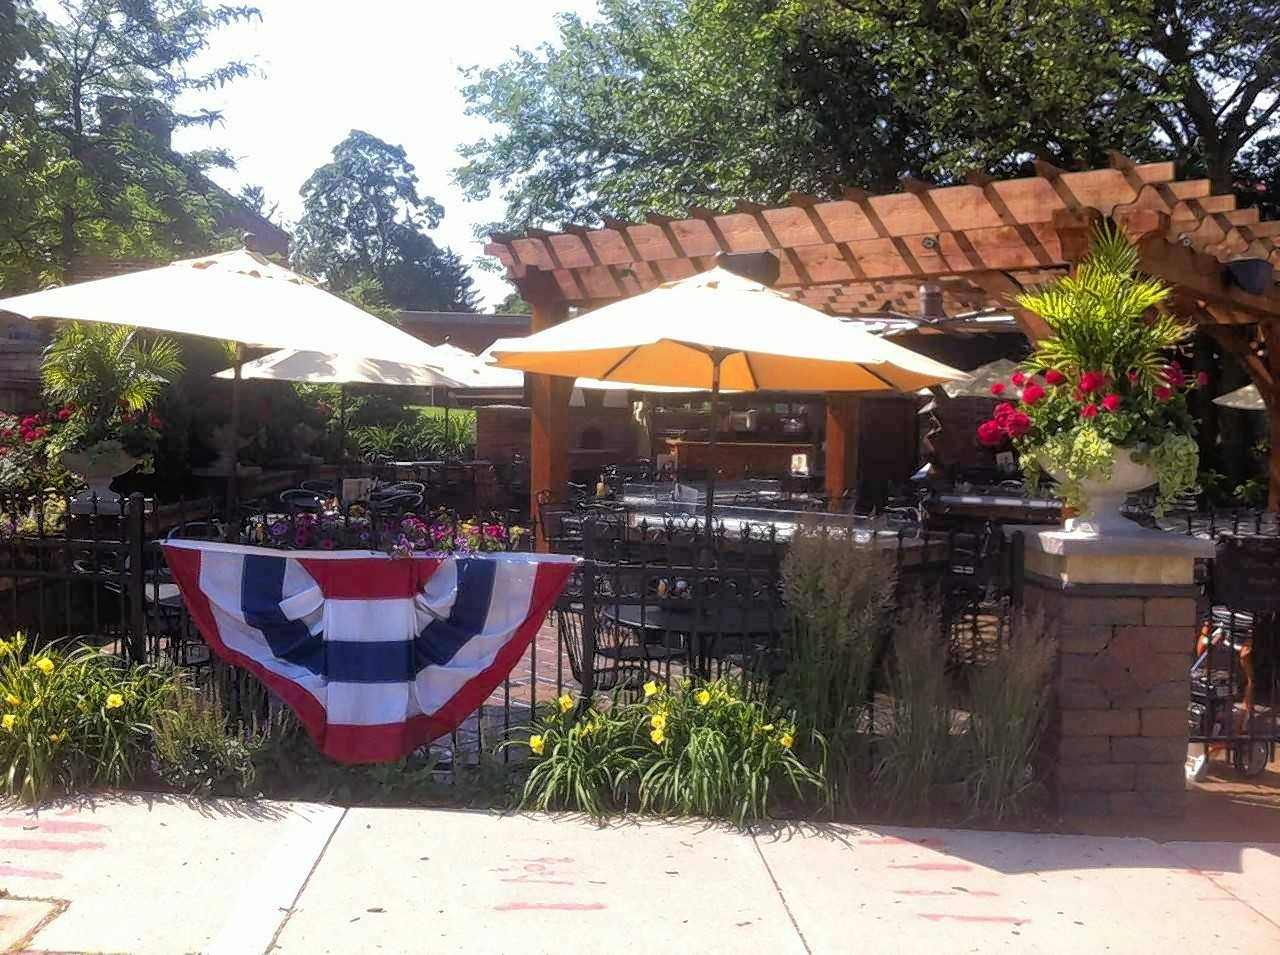 The large outdoor patio at The Office in St. Charles includes ample seating, lush plants and a wooden canopy.